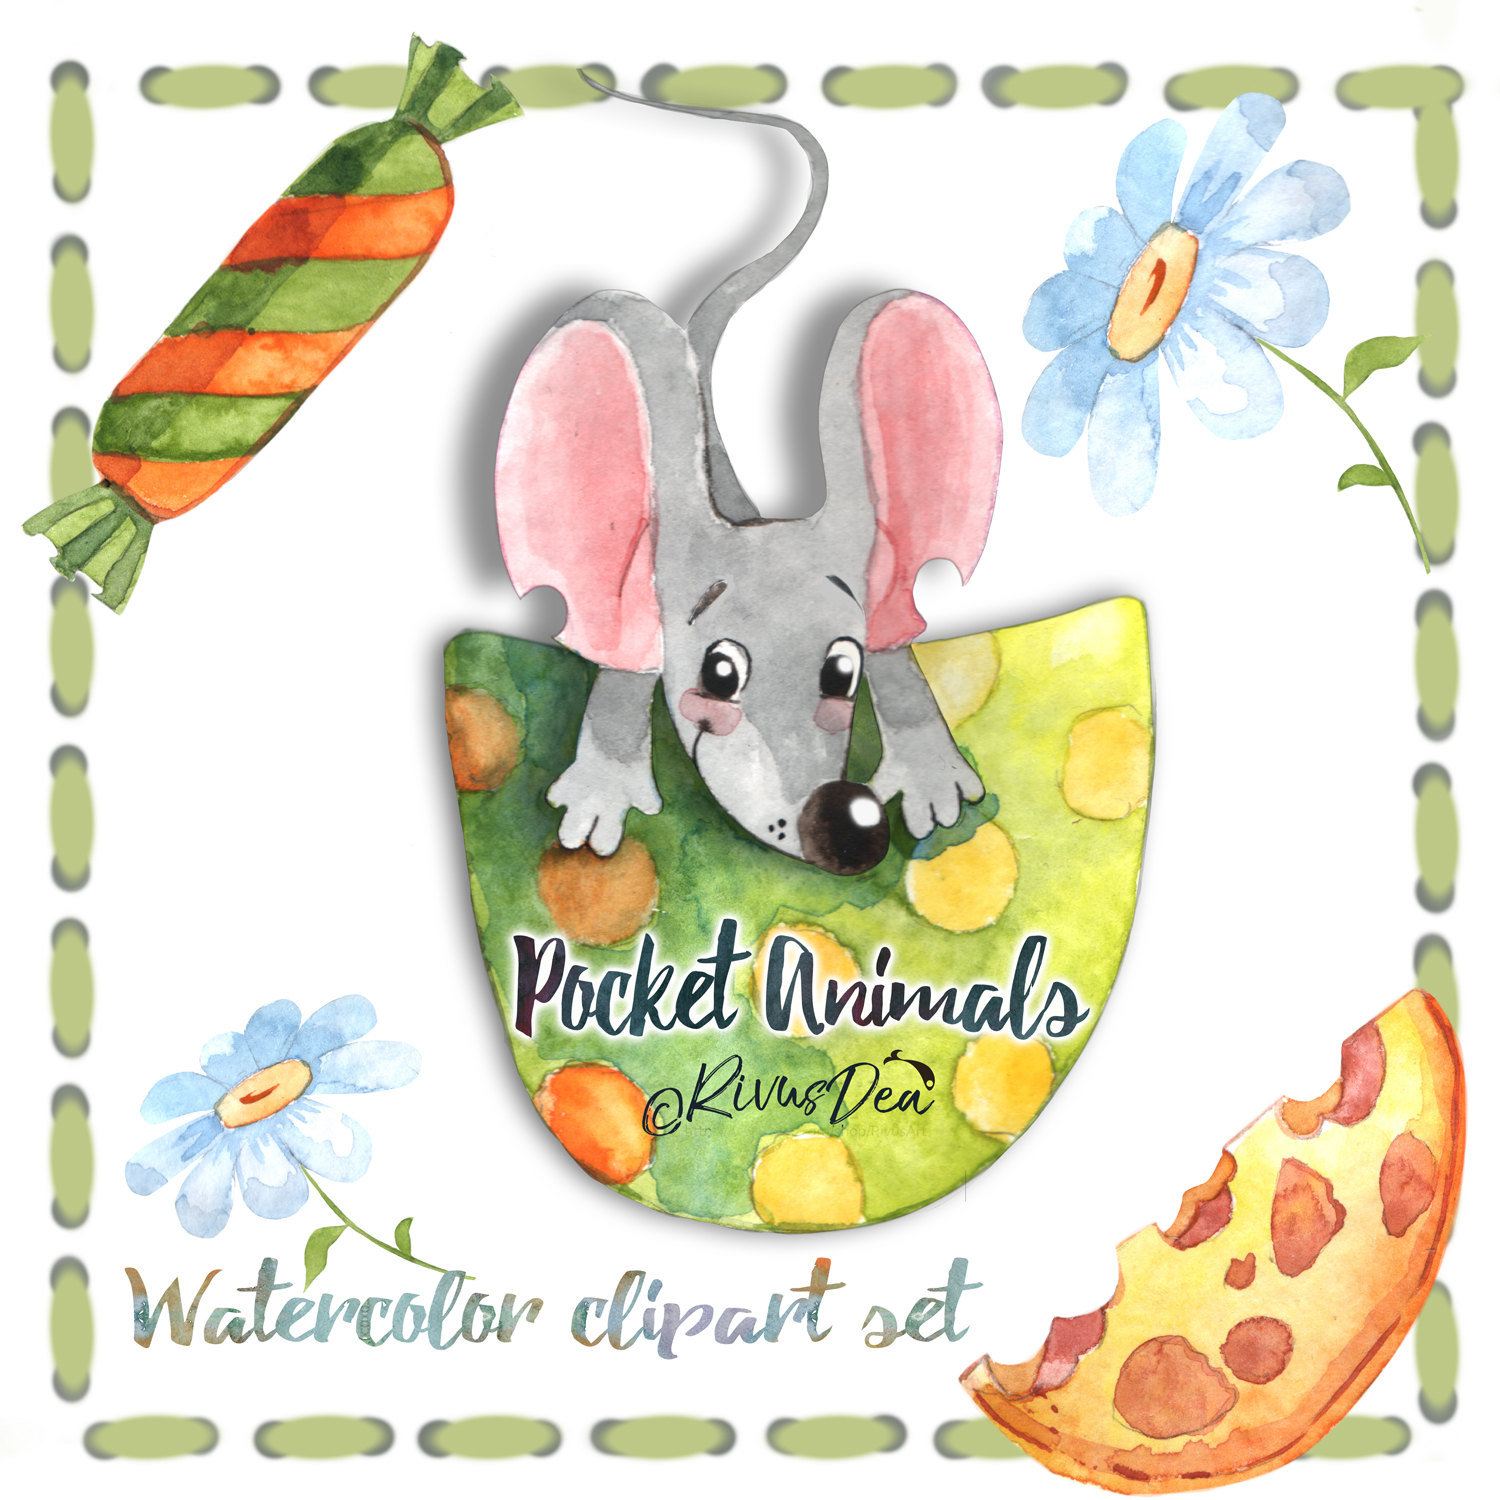 Watercolor mouse clipart royalty free Watercolor mouse clipart set royalty free